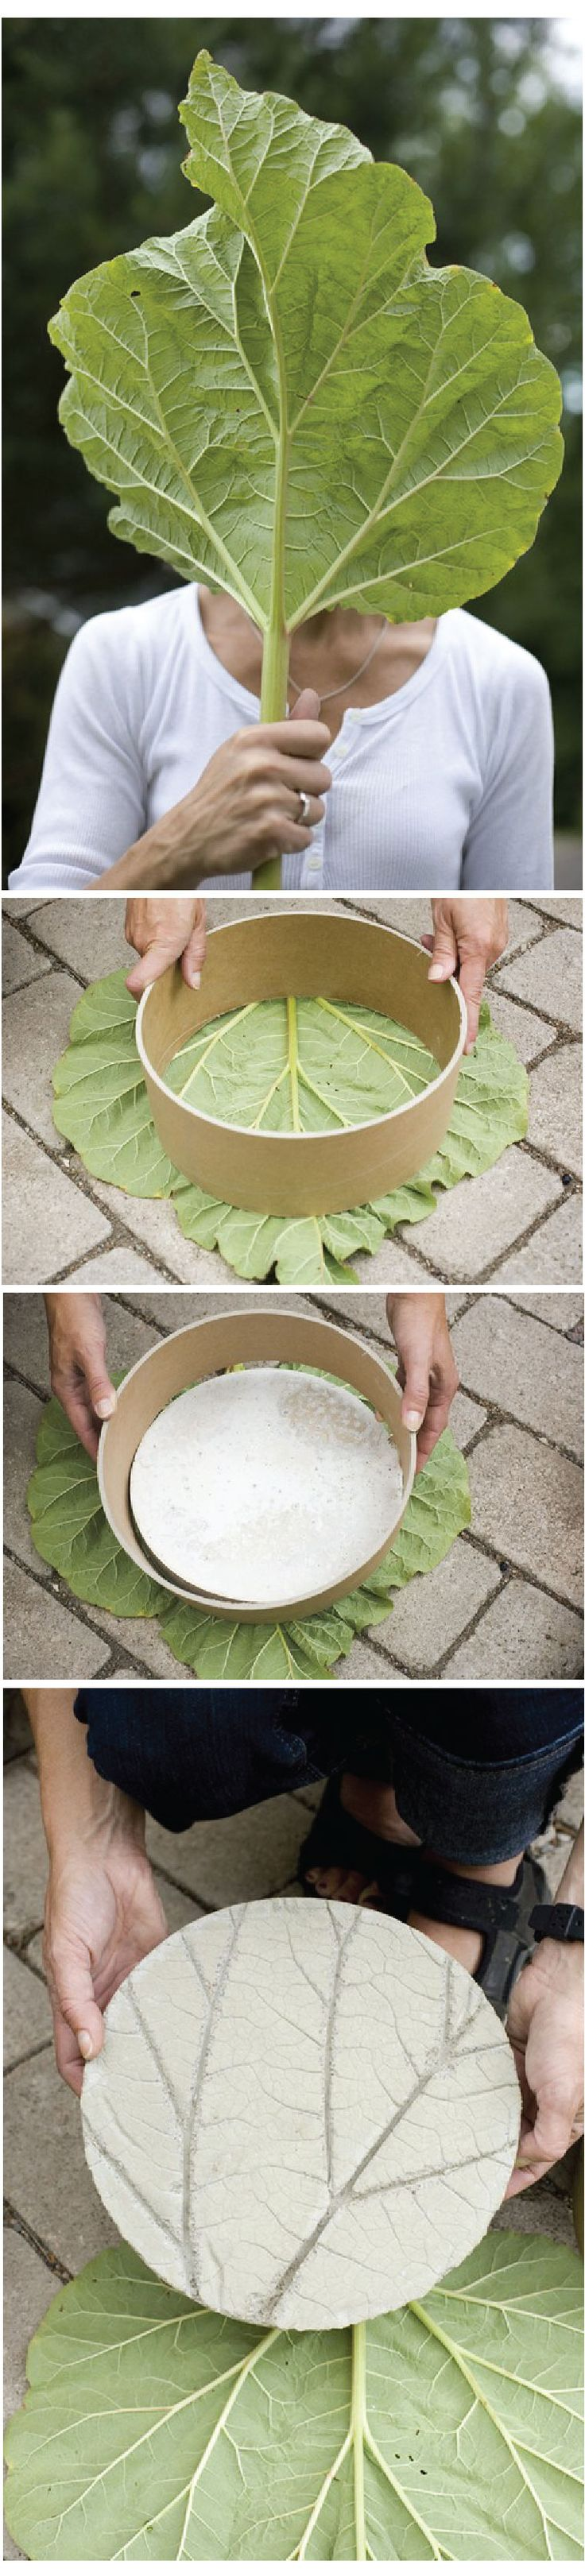 DIY garden stone molded from a real leaf. Great idea to get those stepping stones for less and more creative!